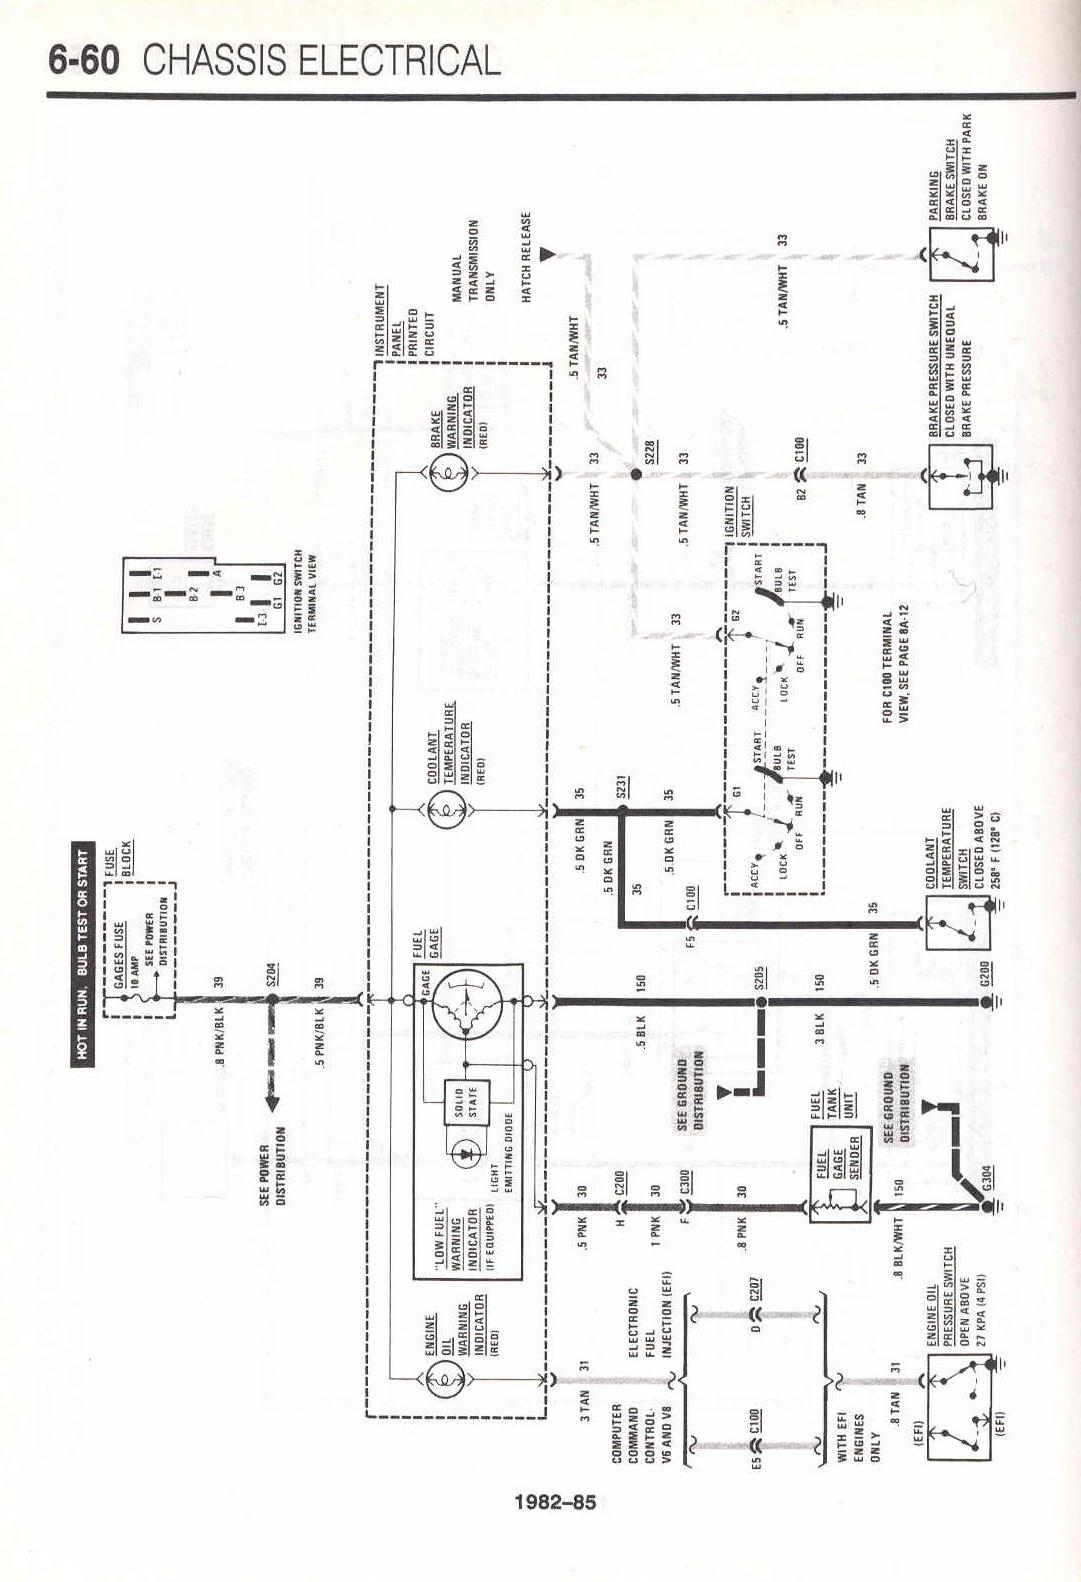 300zx Battery Wiring Diagram Quick Start Guide Of 1986 Nissan Schematic 84 Change Your Idea With Design U2022 Rh Voice Bridgesgi Com Harness